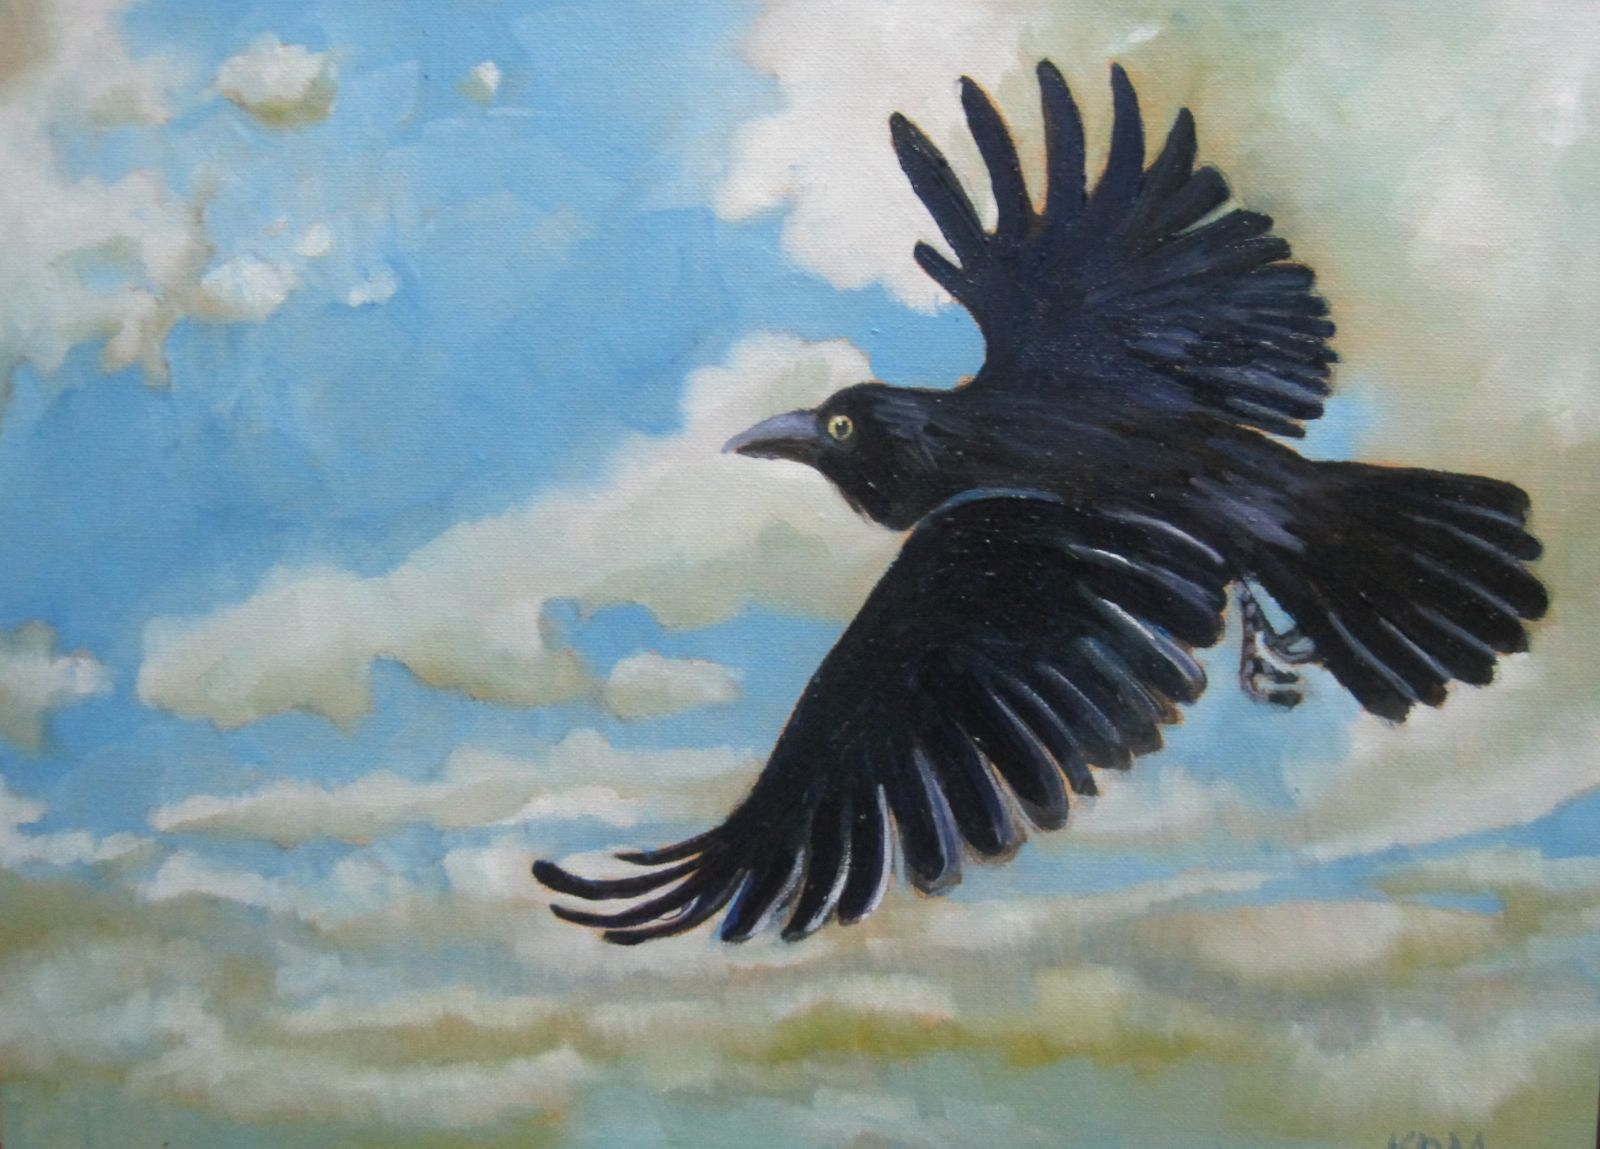 Karl MacKeeman - Raven in Flight | BLACKBIRD SINGING IN THE